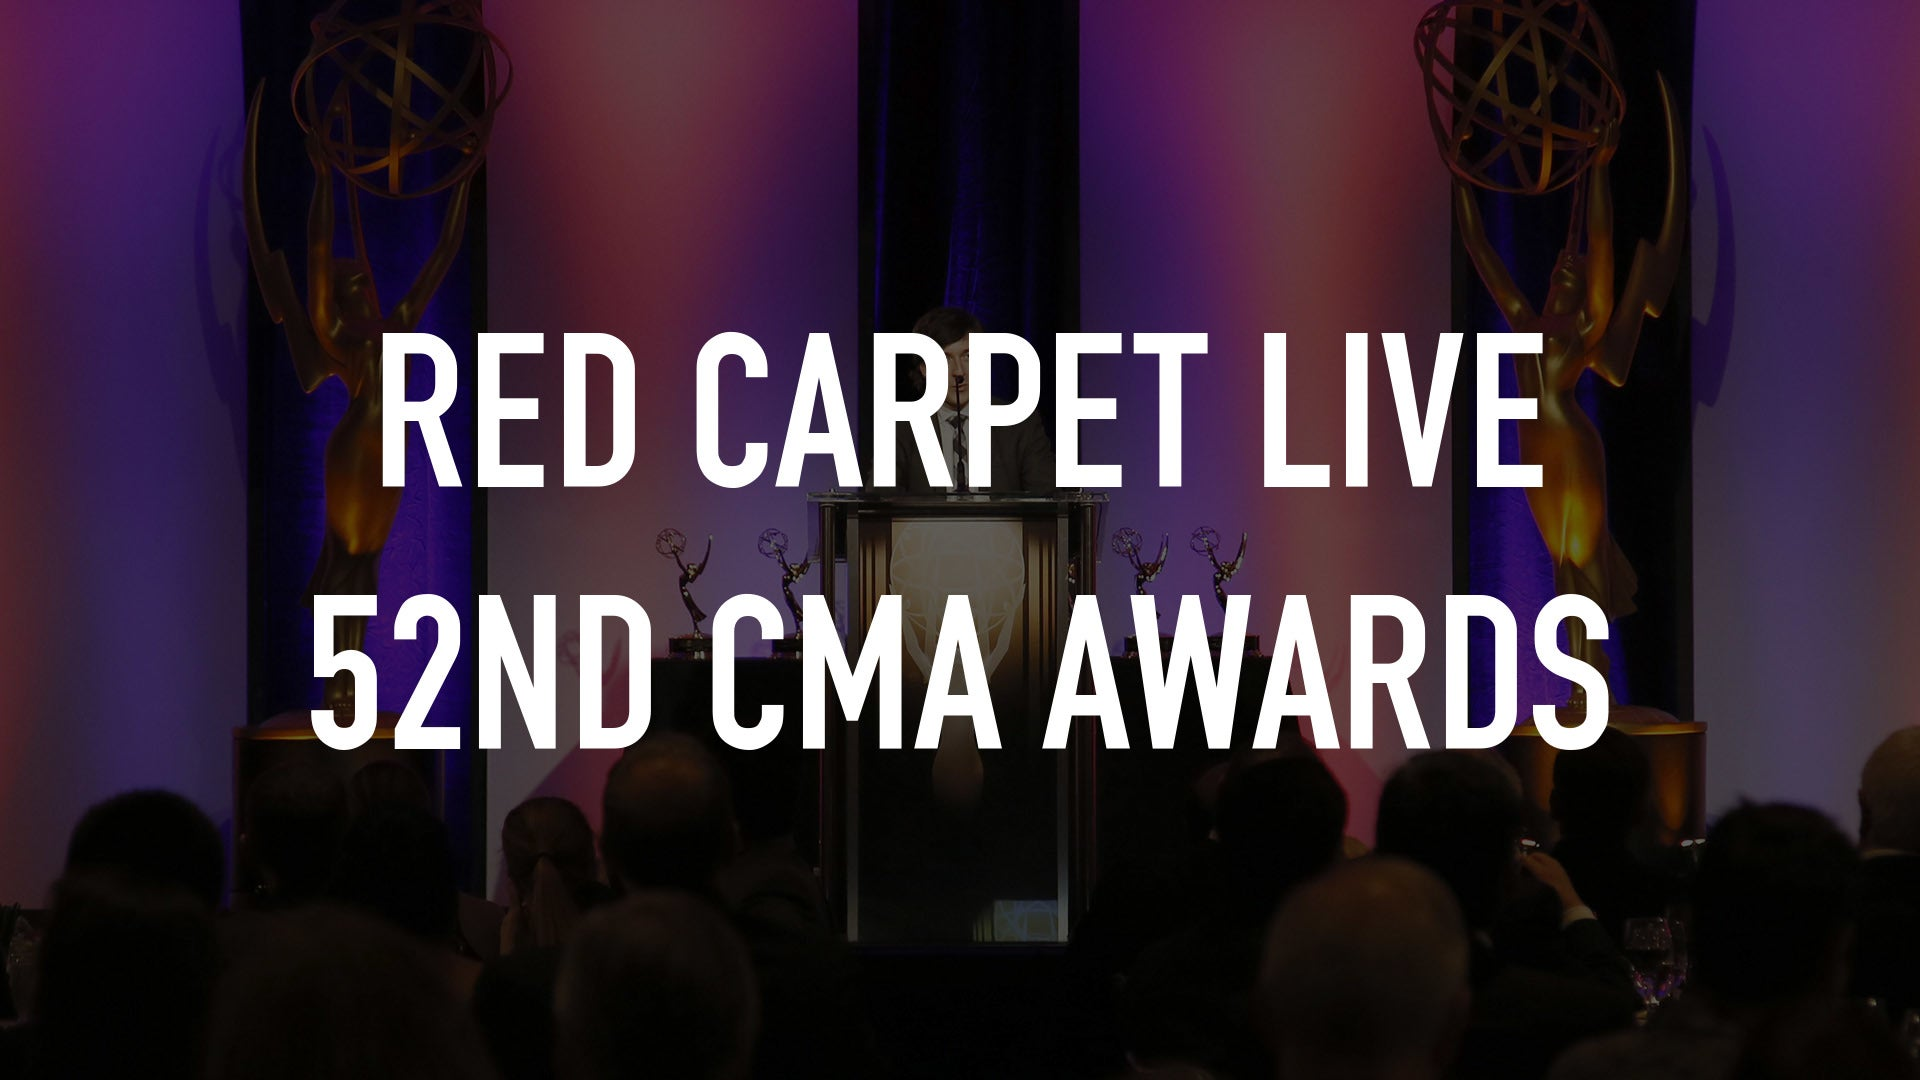 Red Carpet Live 52nd CMA Awards